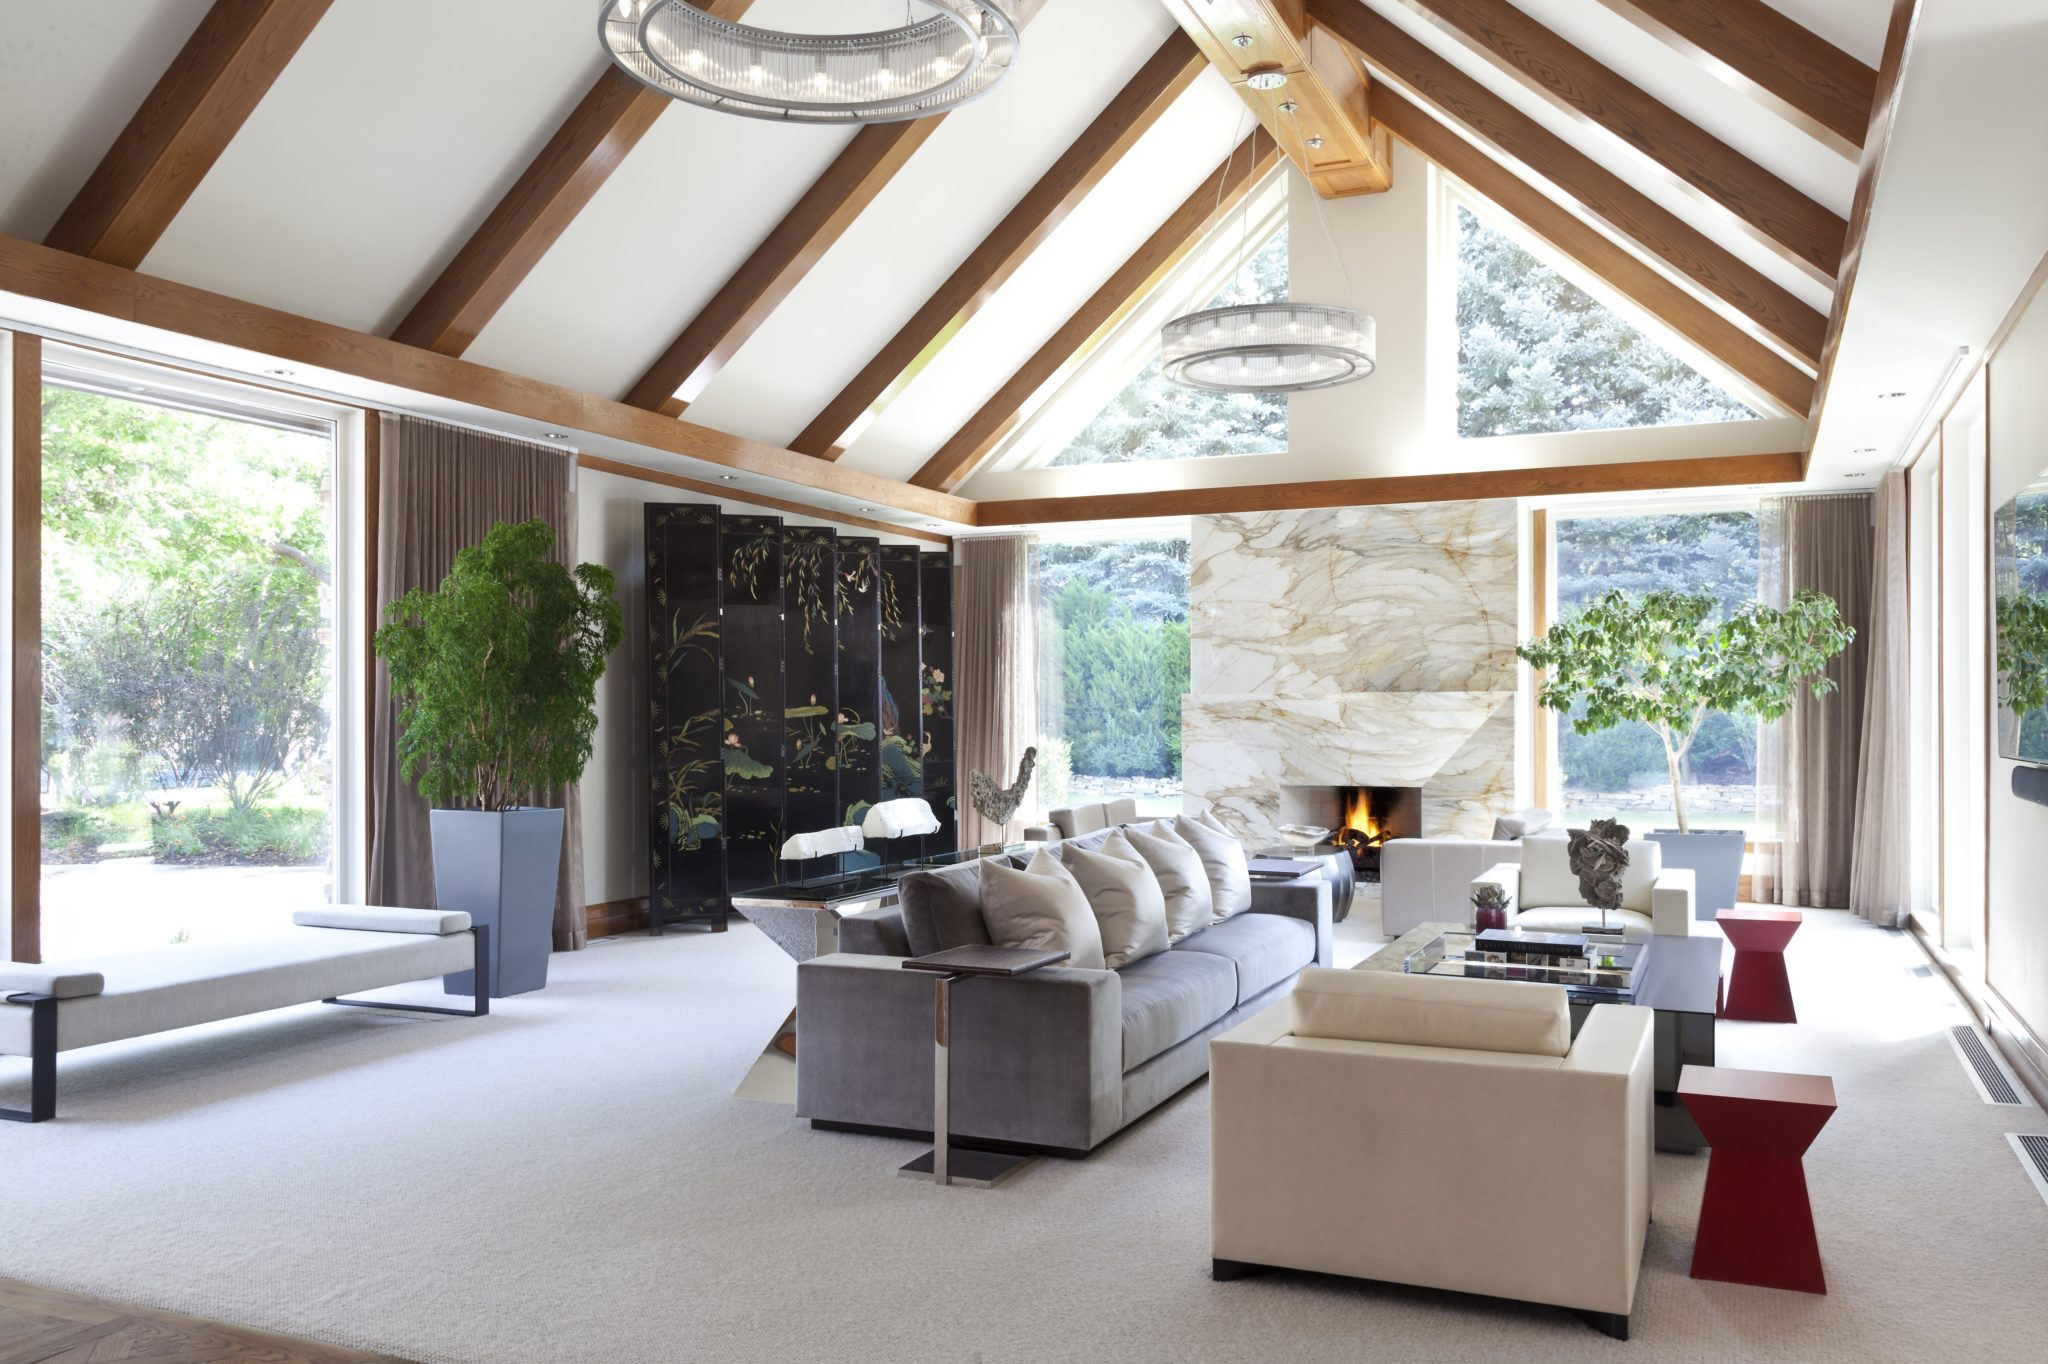 24 Chic Spaces With Cathedral Ceilings Chairish Blog